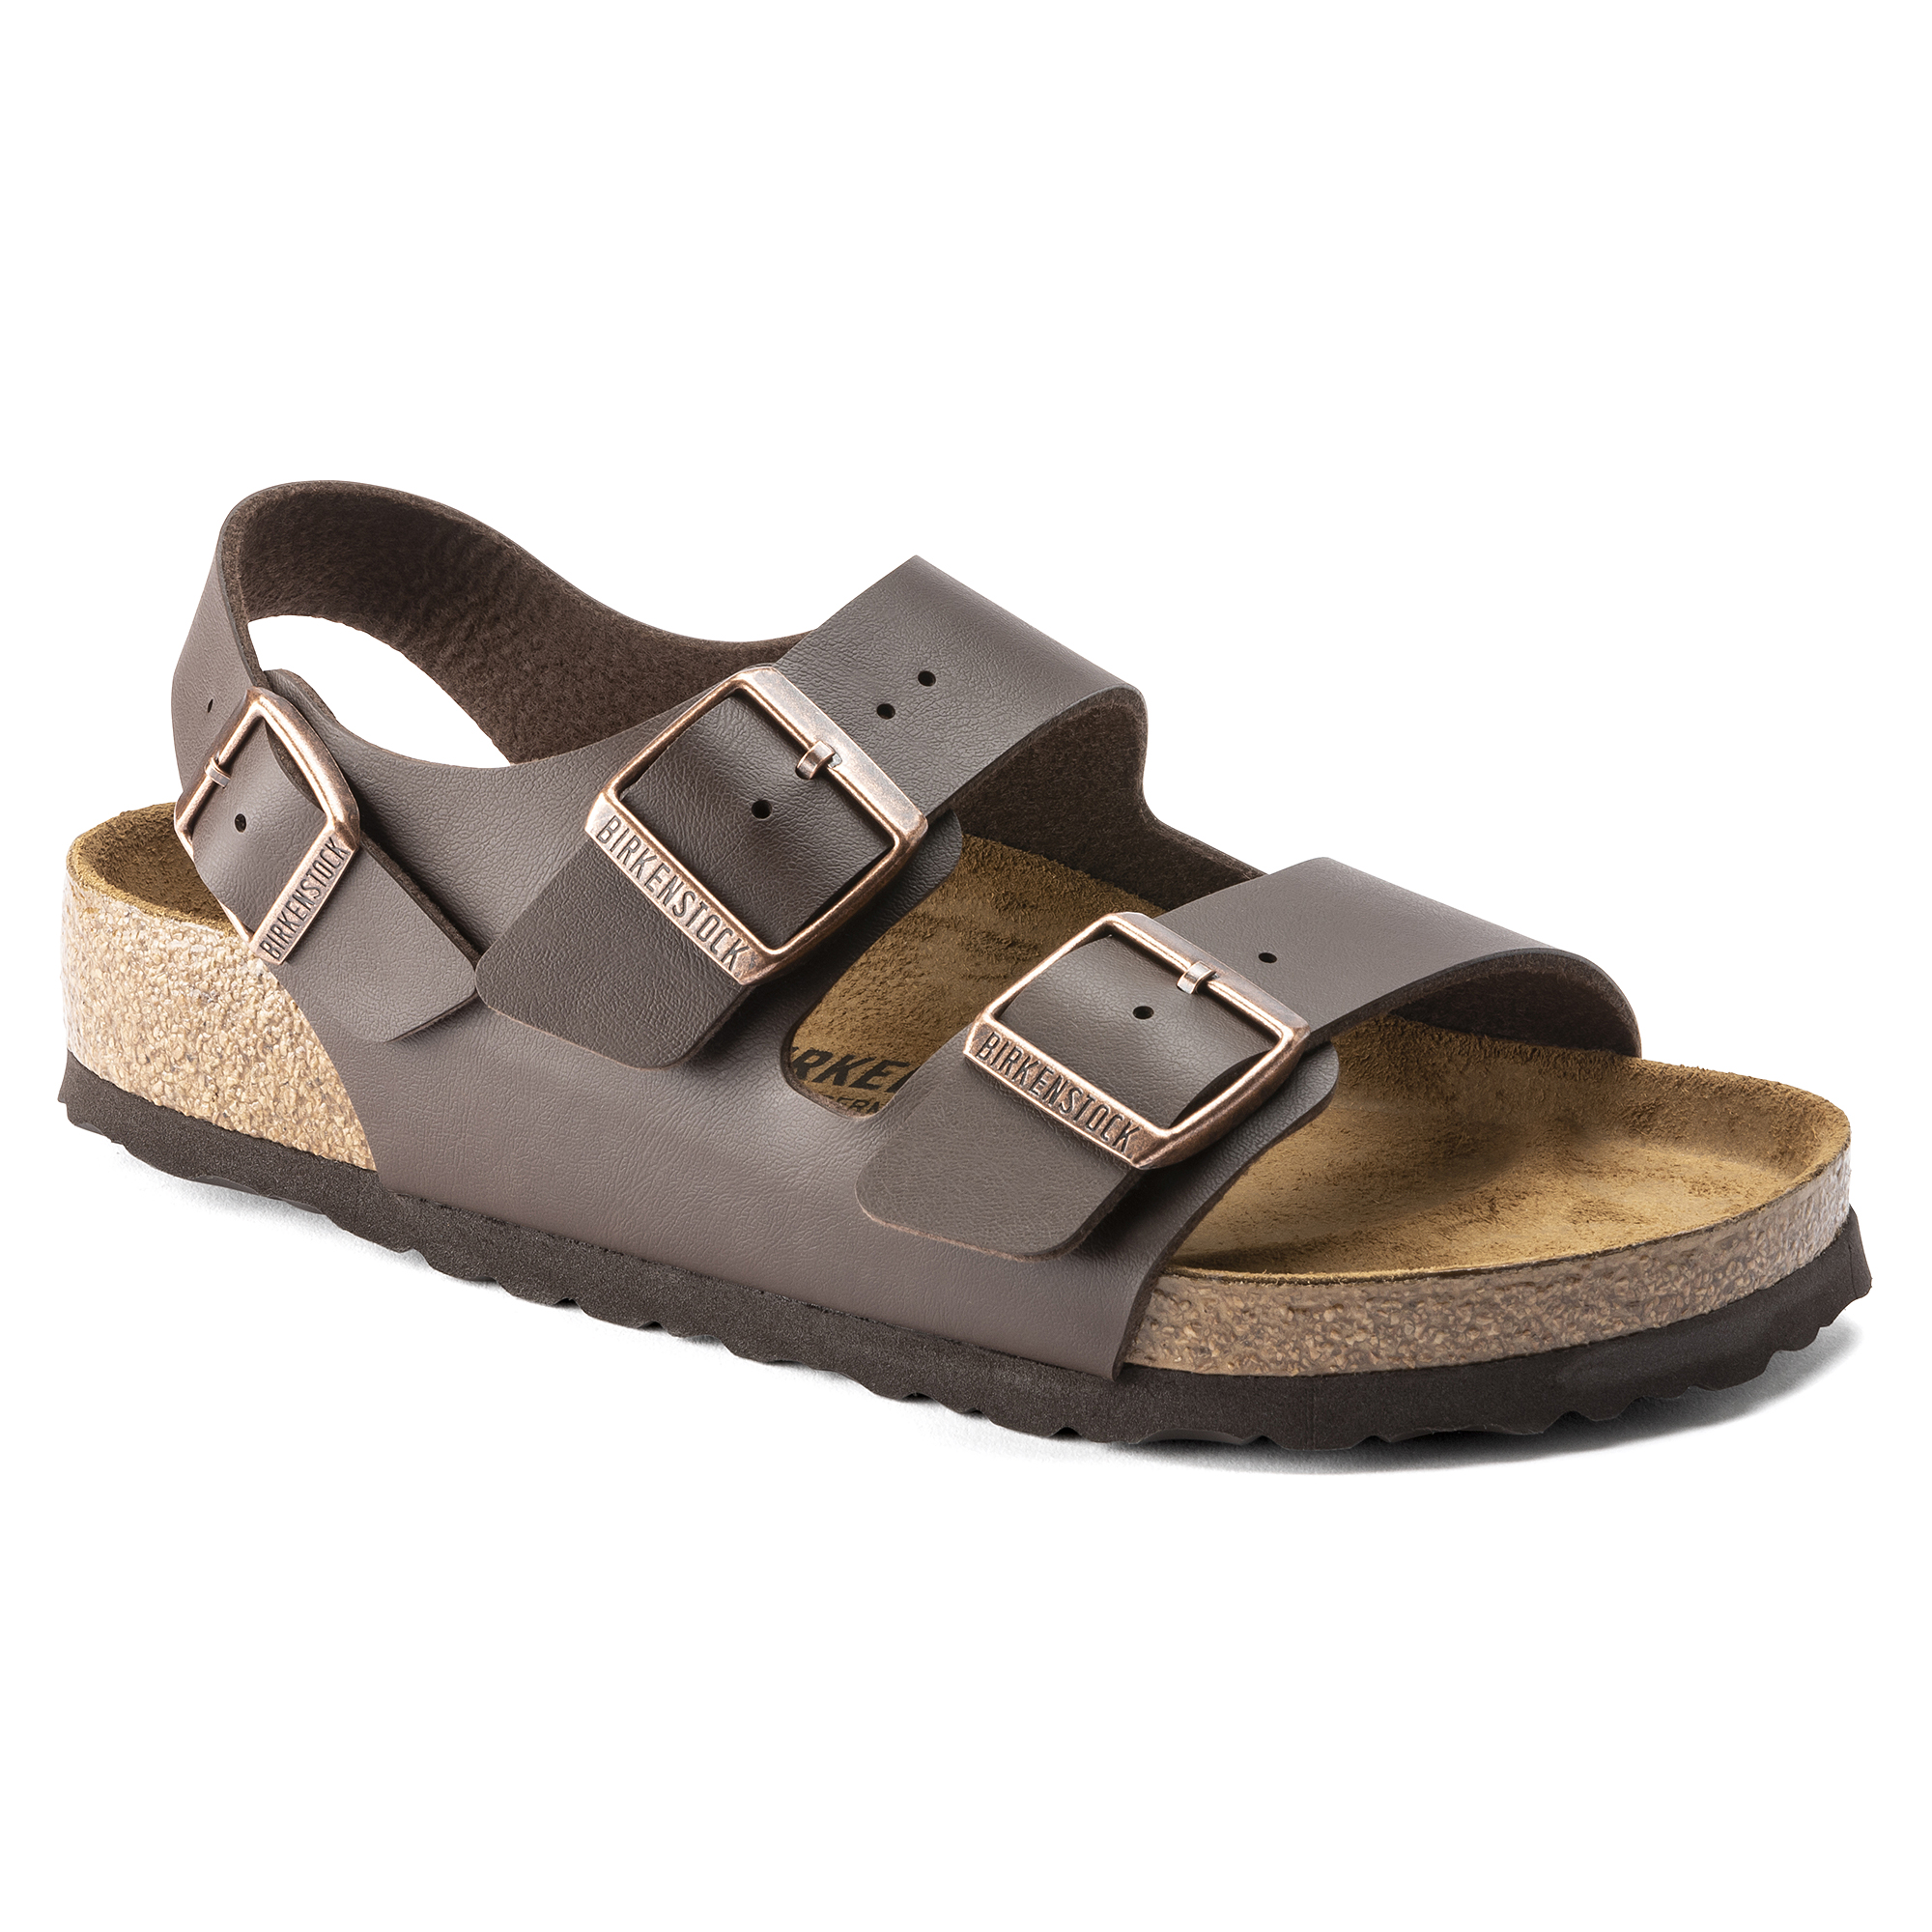 「birkenstock milano birko-flor sandals in dark brown」的圖片搜尋結果